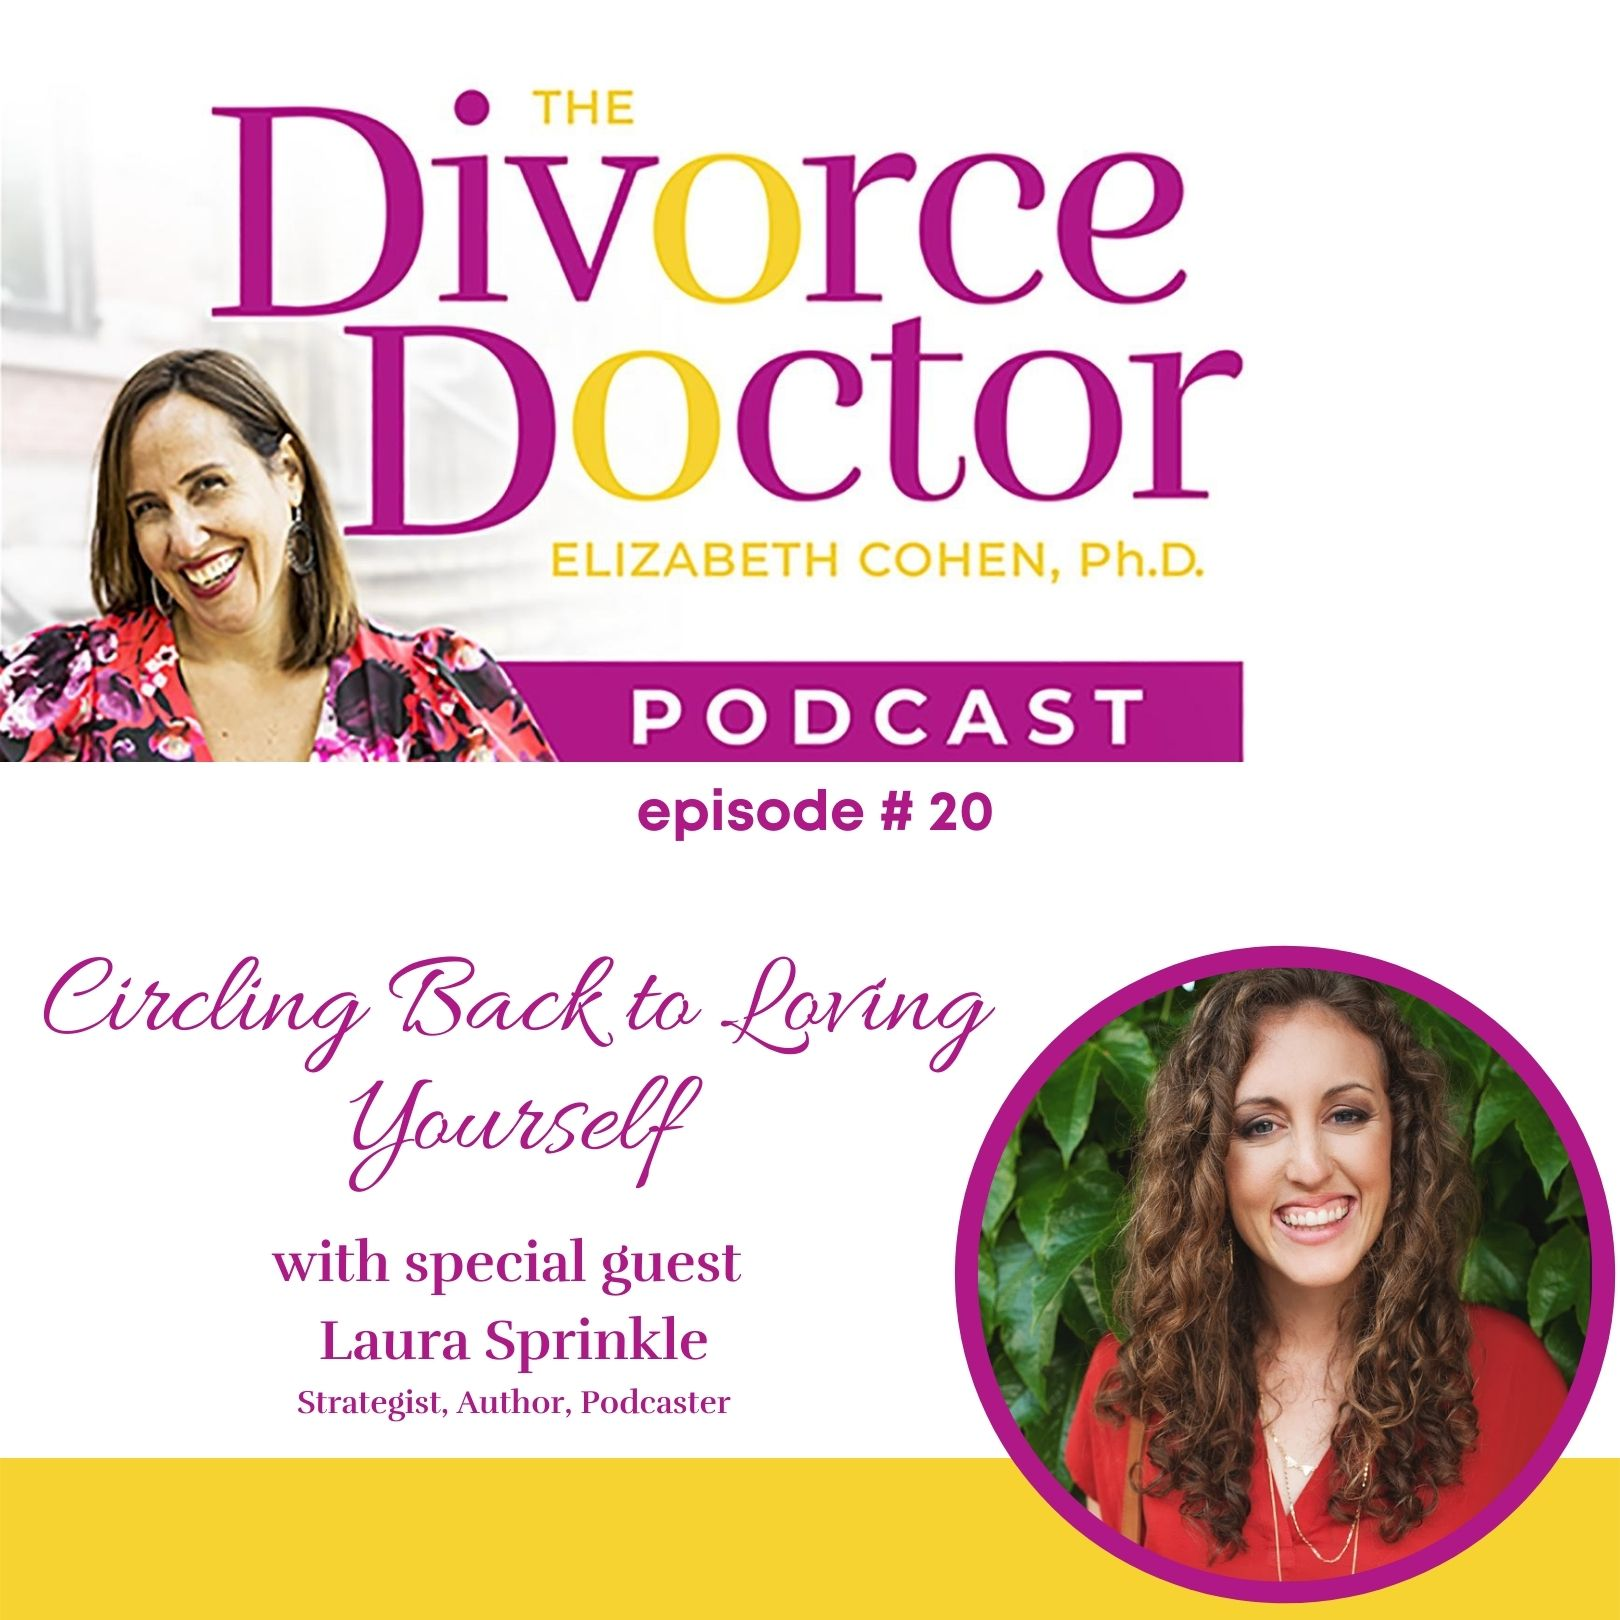 The Divorce Doctor - Episode 20: Circling Back to Loving Yourself